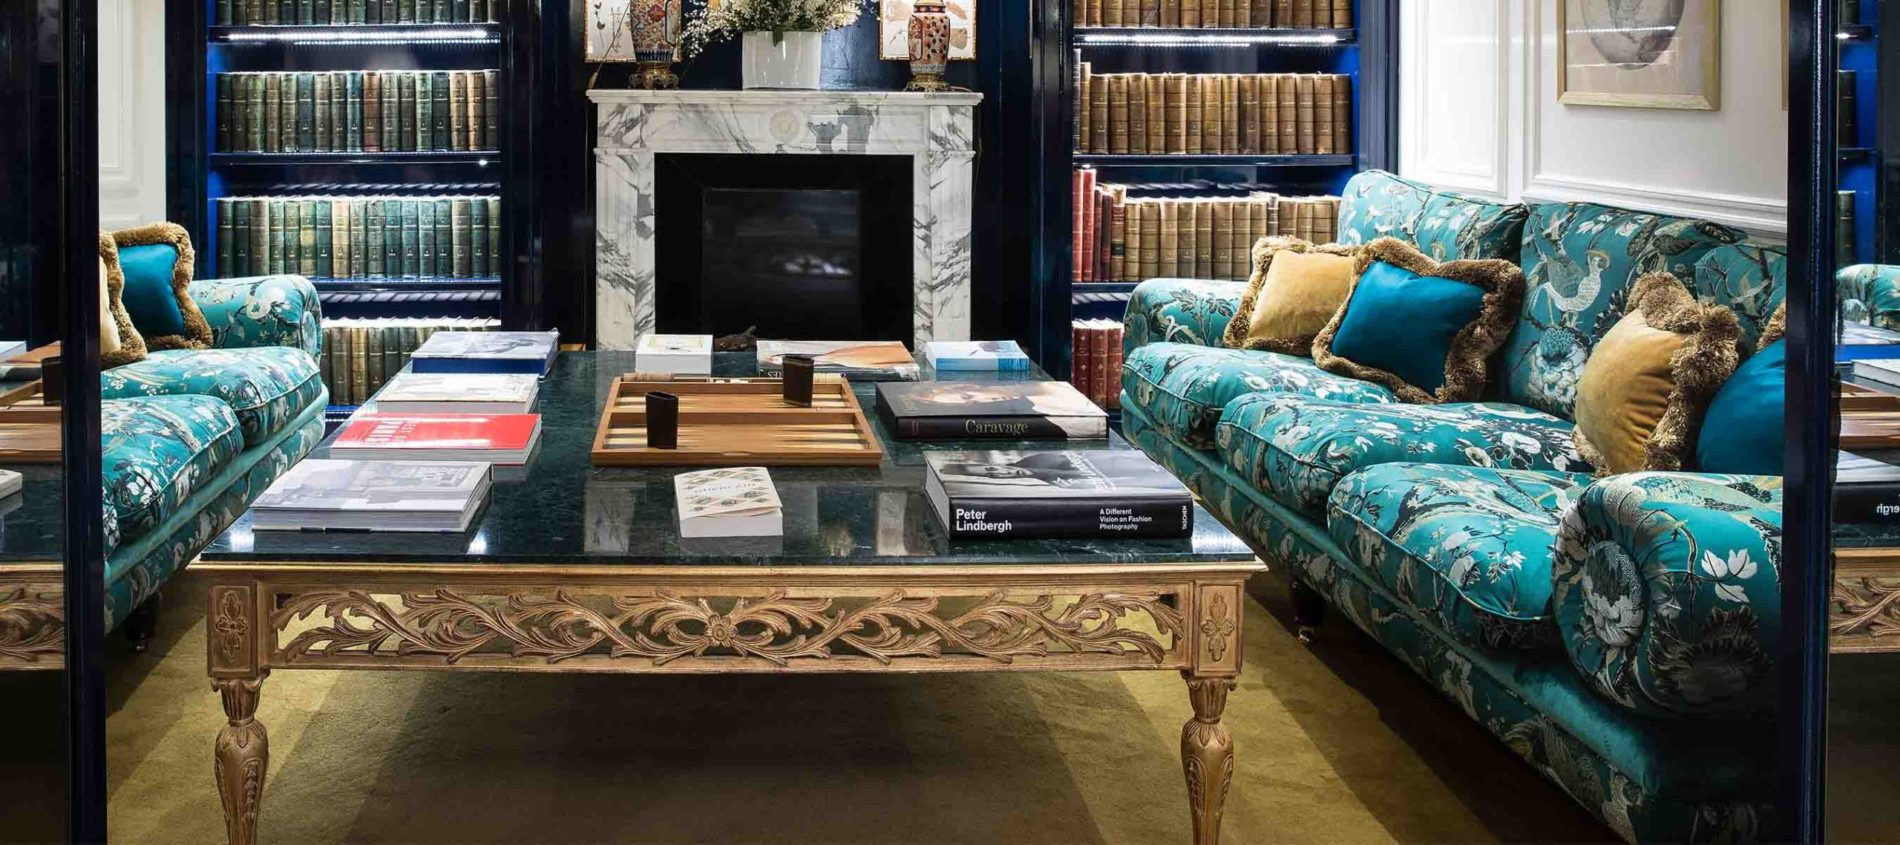 Patterned Turquoise cushioned sofa with scatter cushions in library